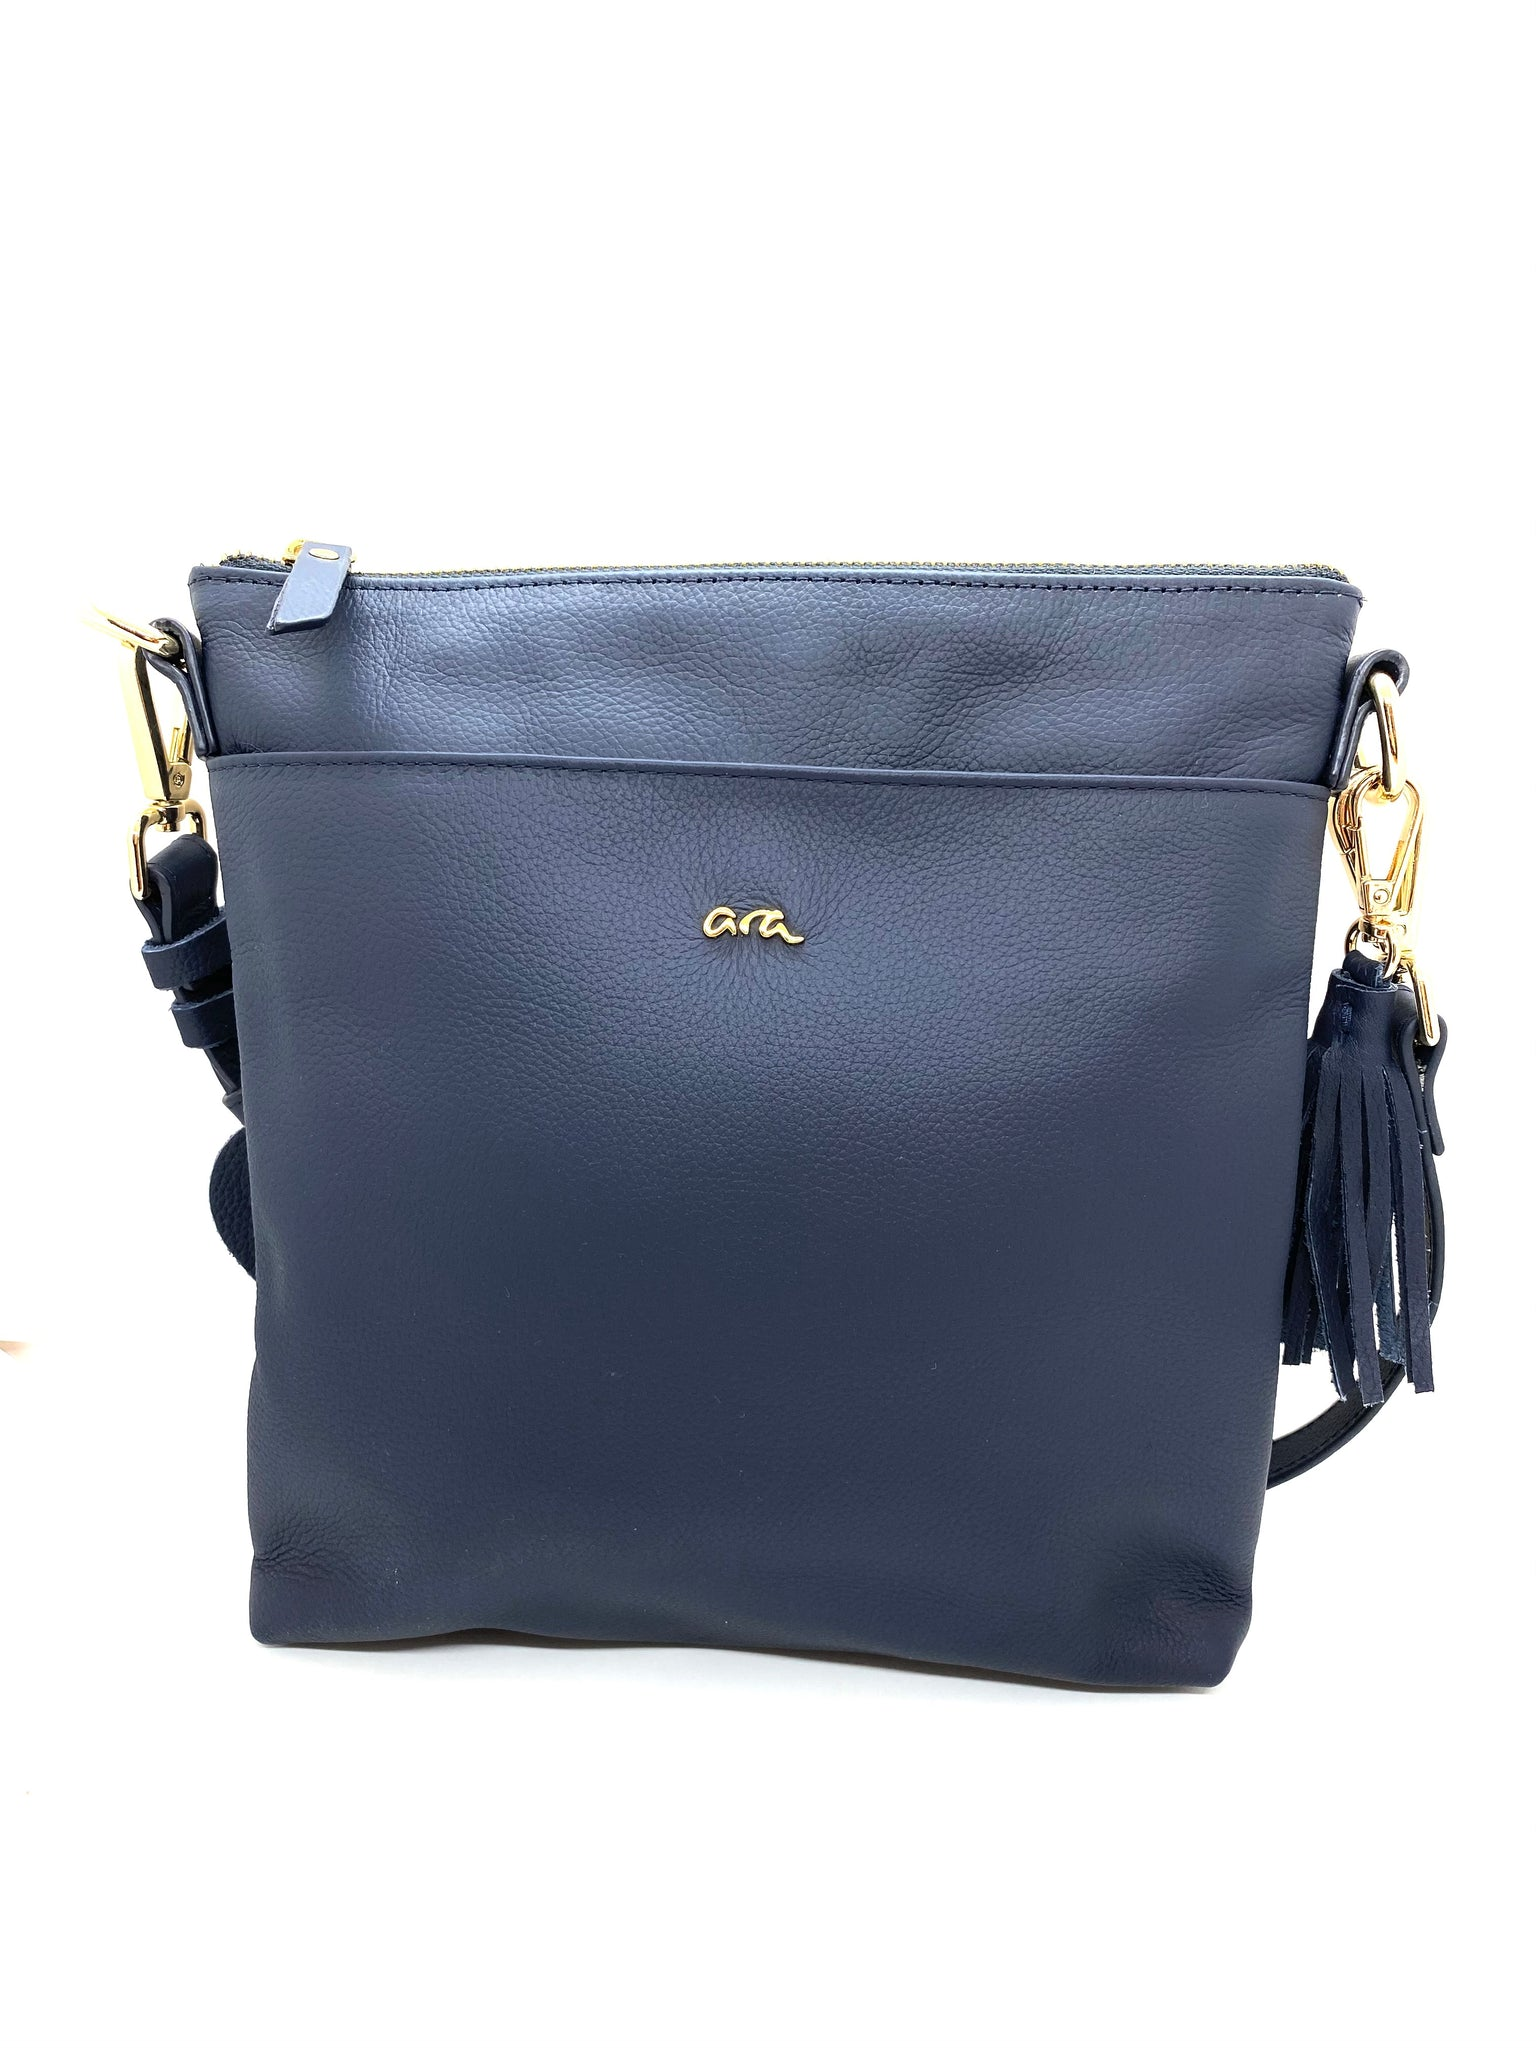 Ara Ladies Leather shoulder Bag Navy